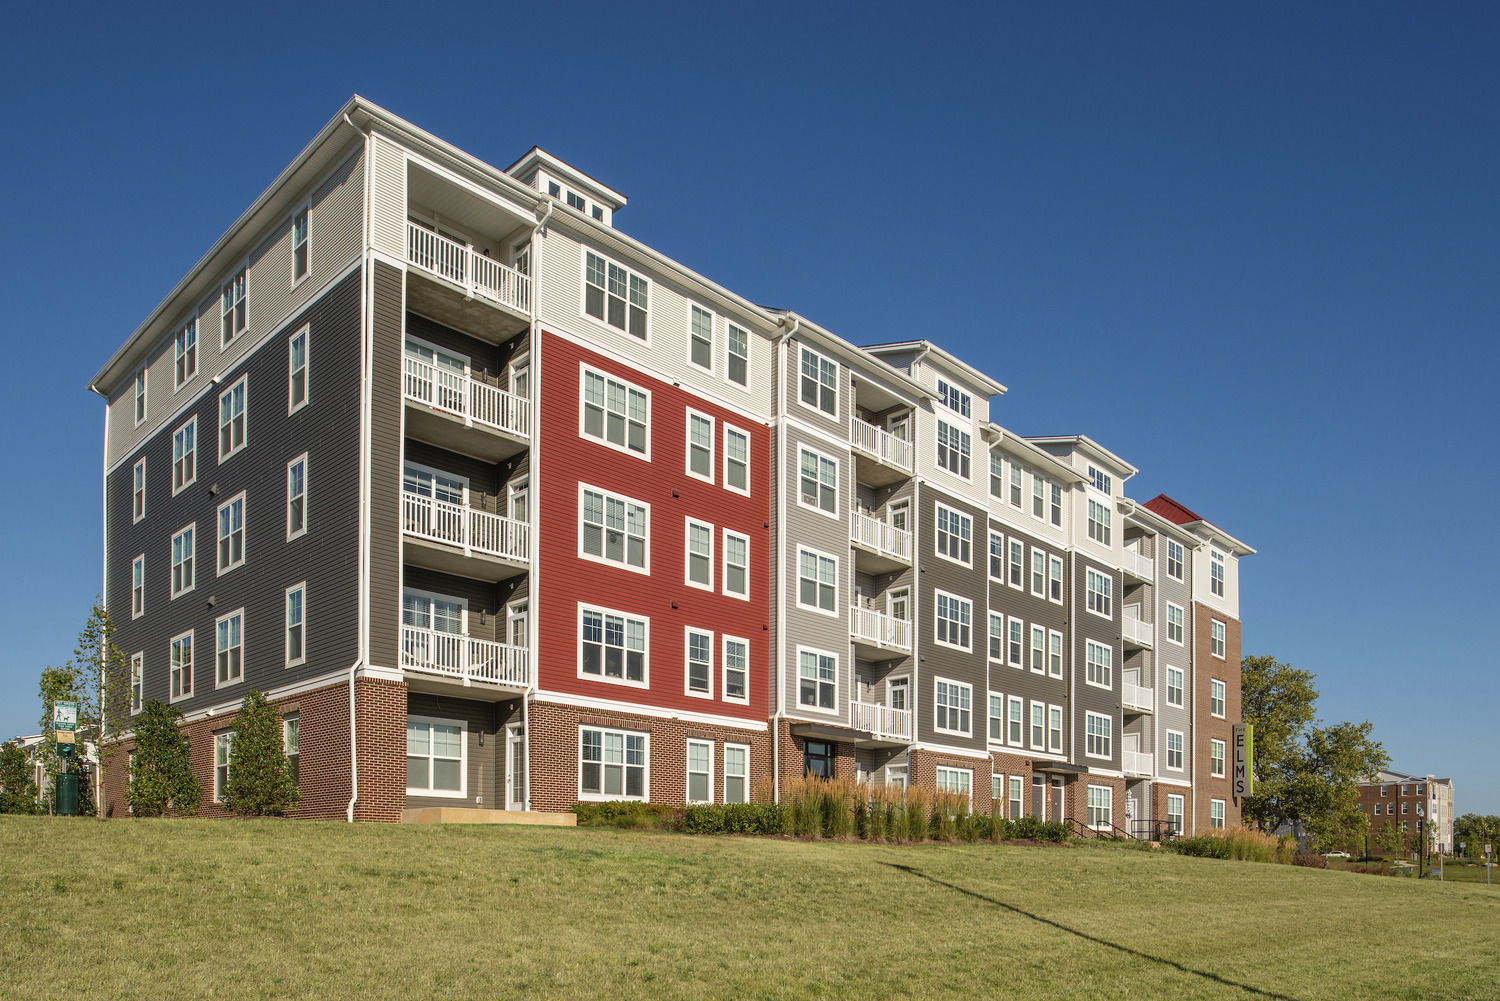 CBG builds The Elms at Century, a 300-Unit Market-Rate Apartment Community with Amenities in Germantown, MD - Image #5